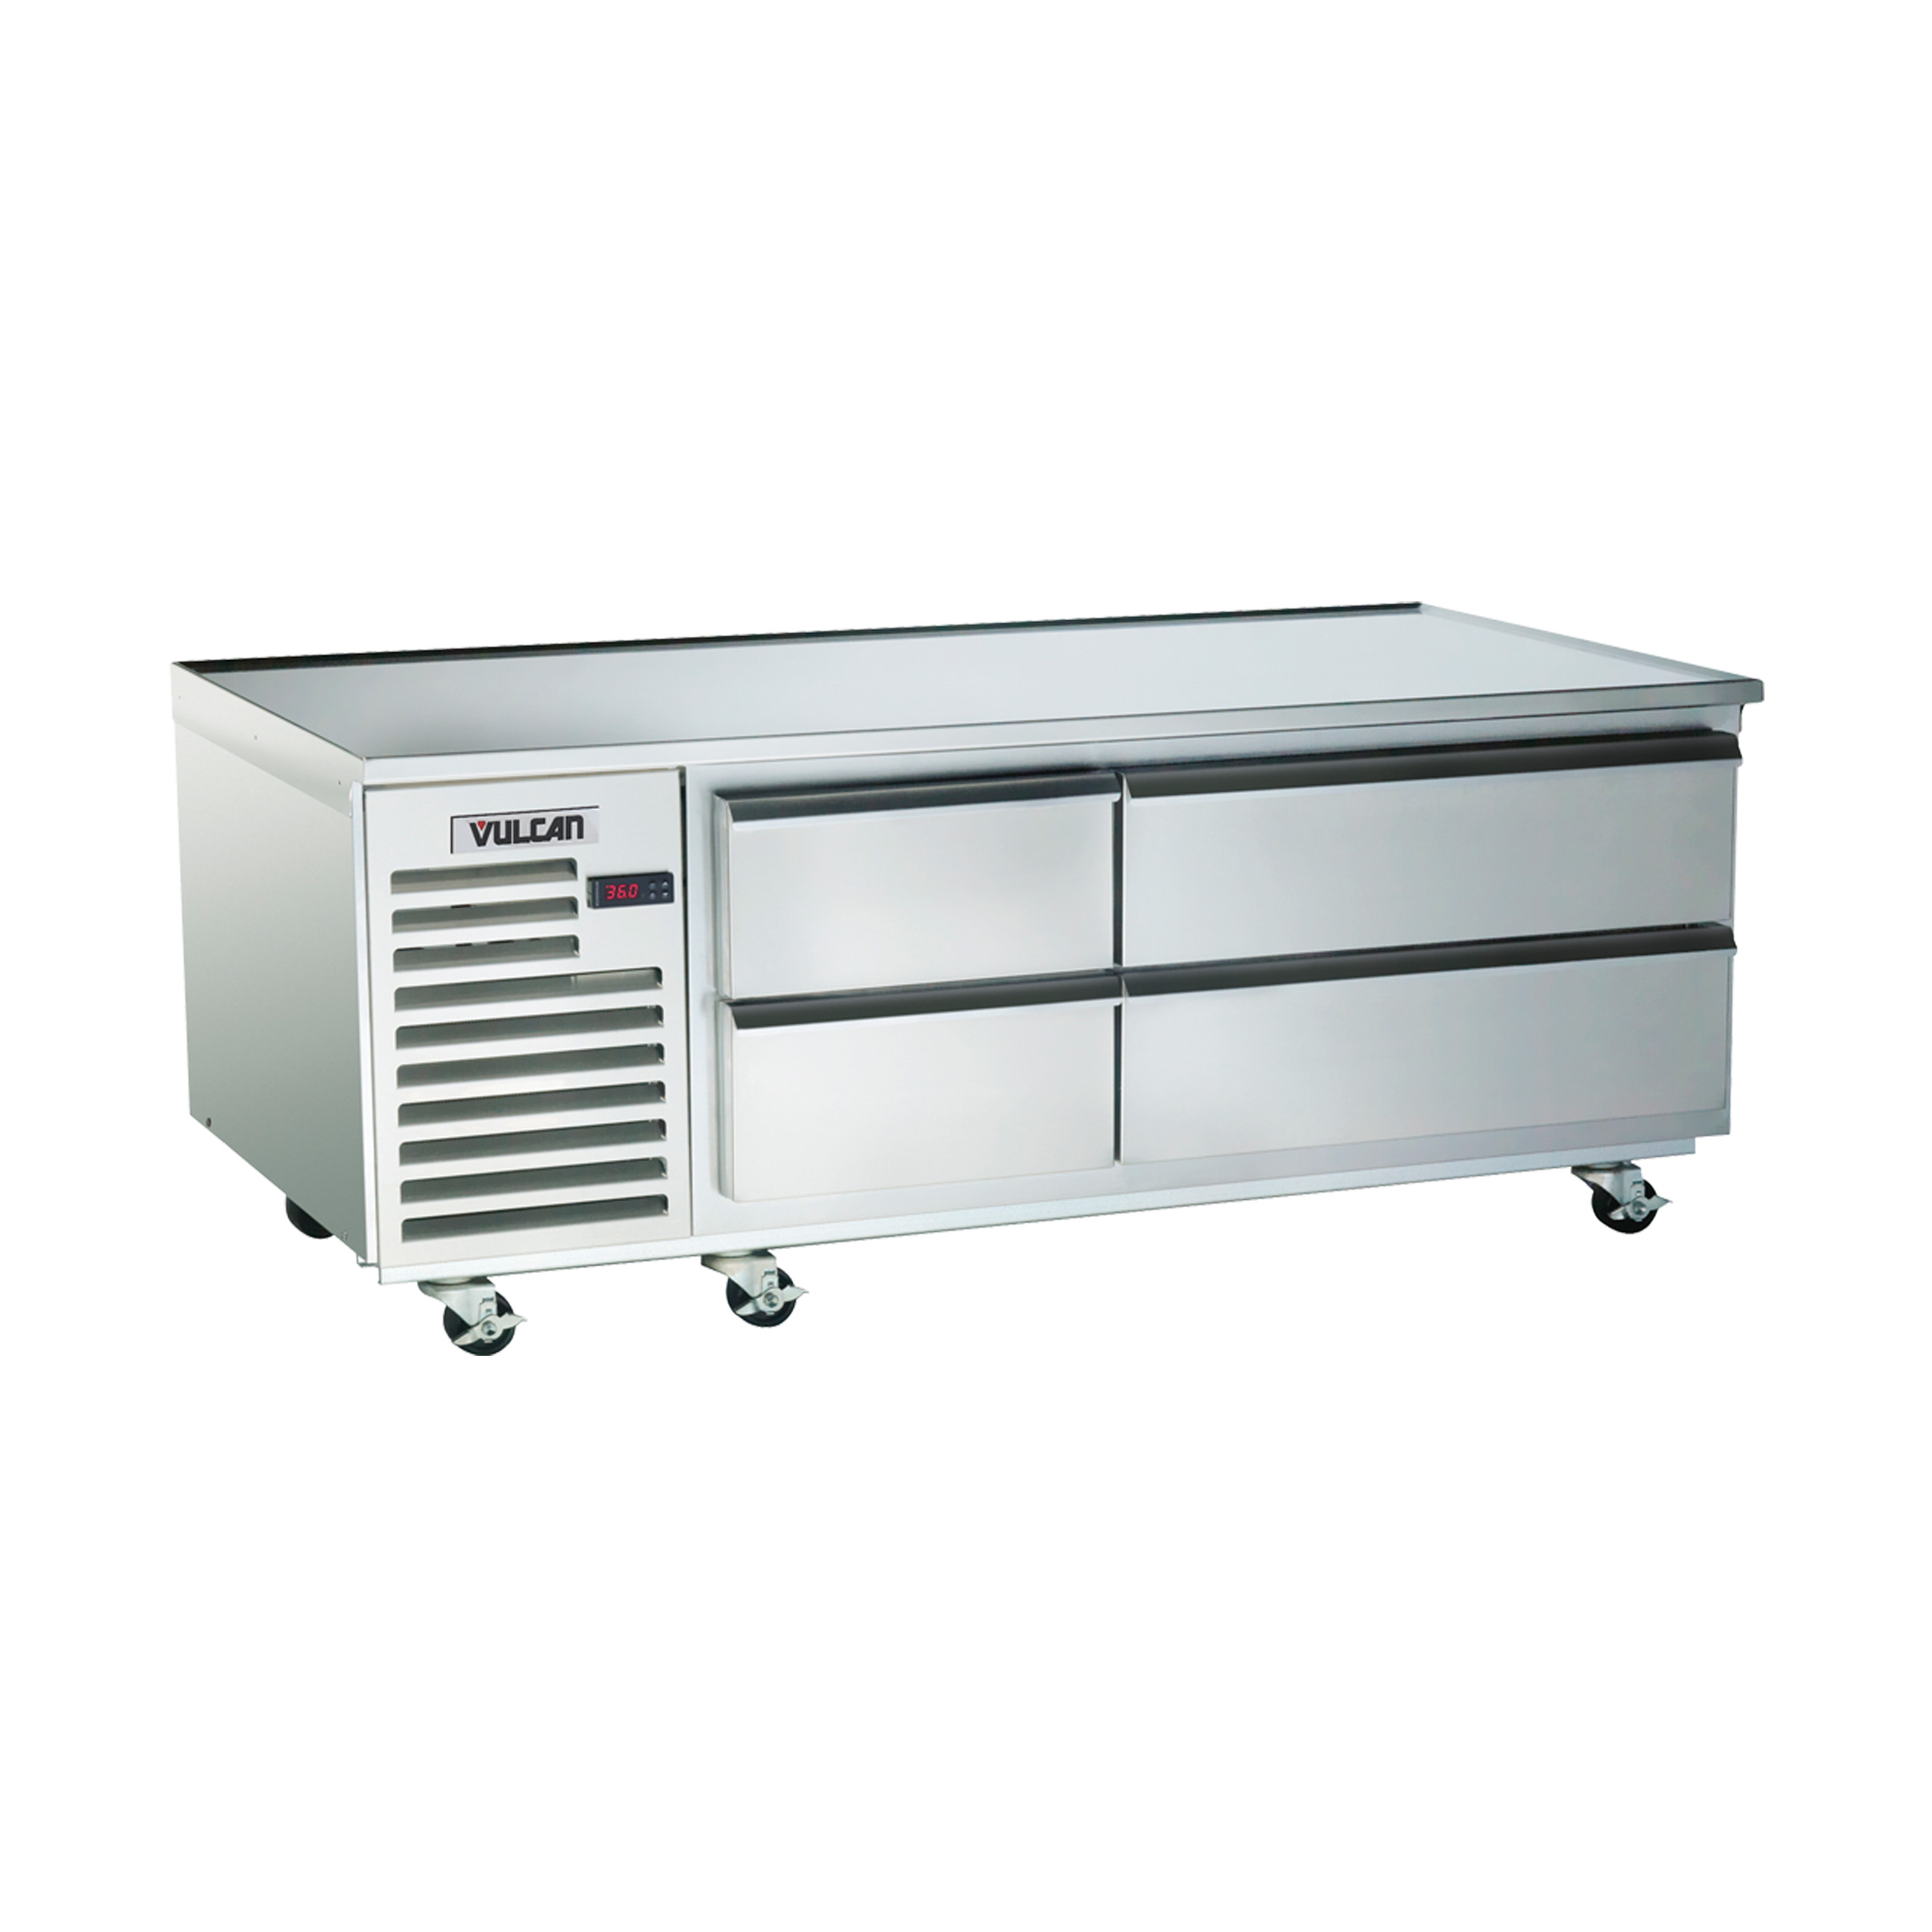 Vulcan VSC96 equipment stand, refrigerated base